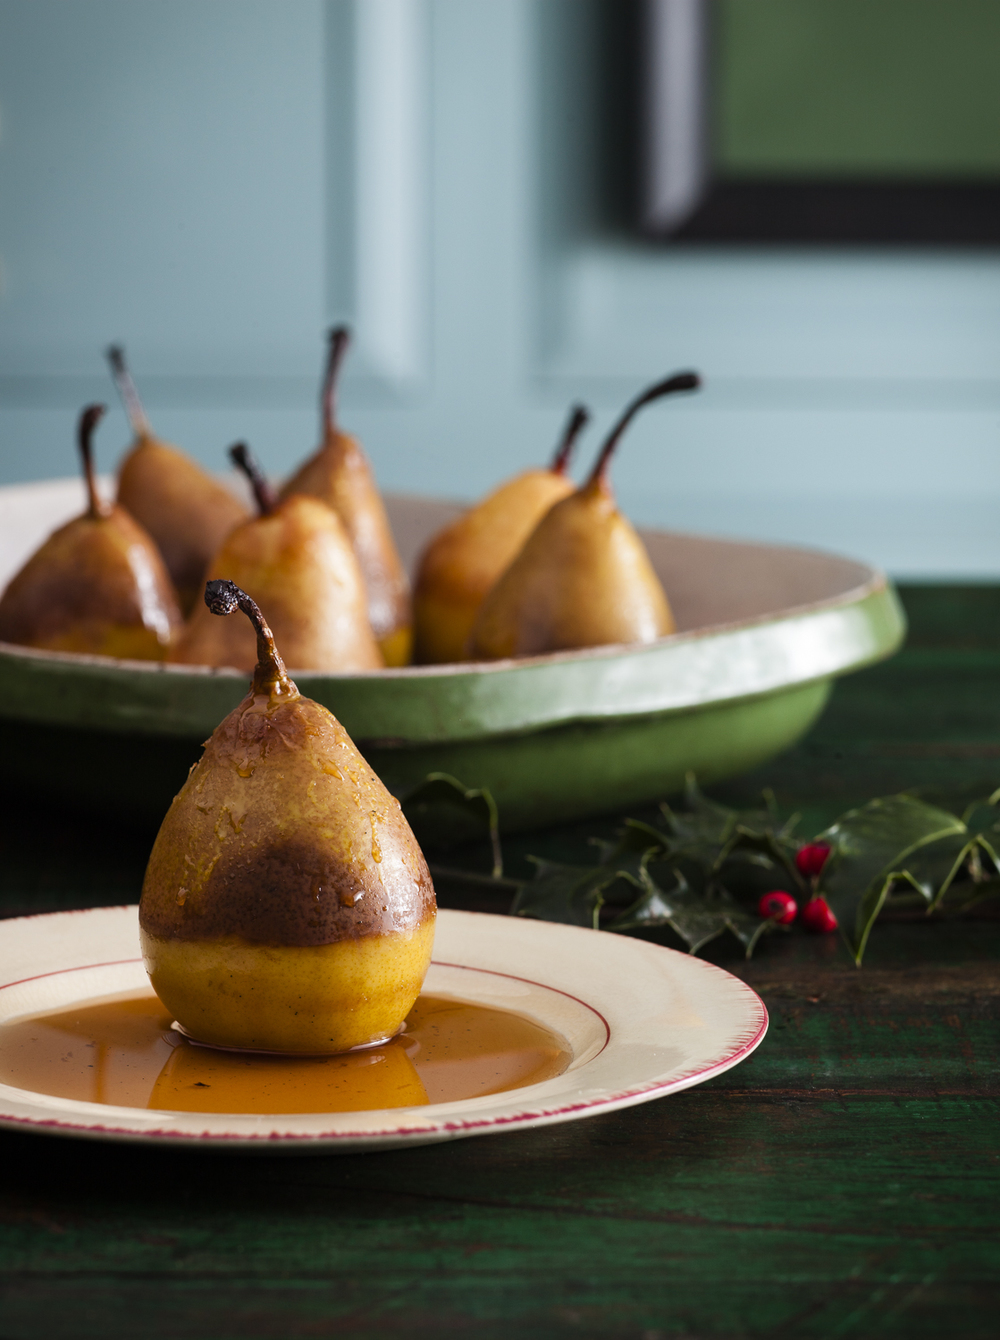 oliver_rowe_sunday_times_food_styling_Poached Pear-6.jpg